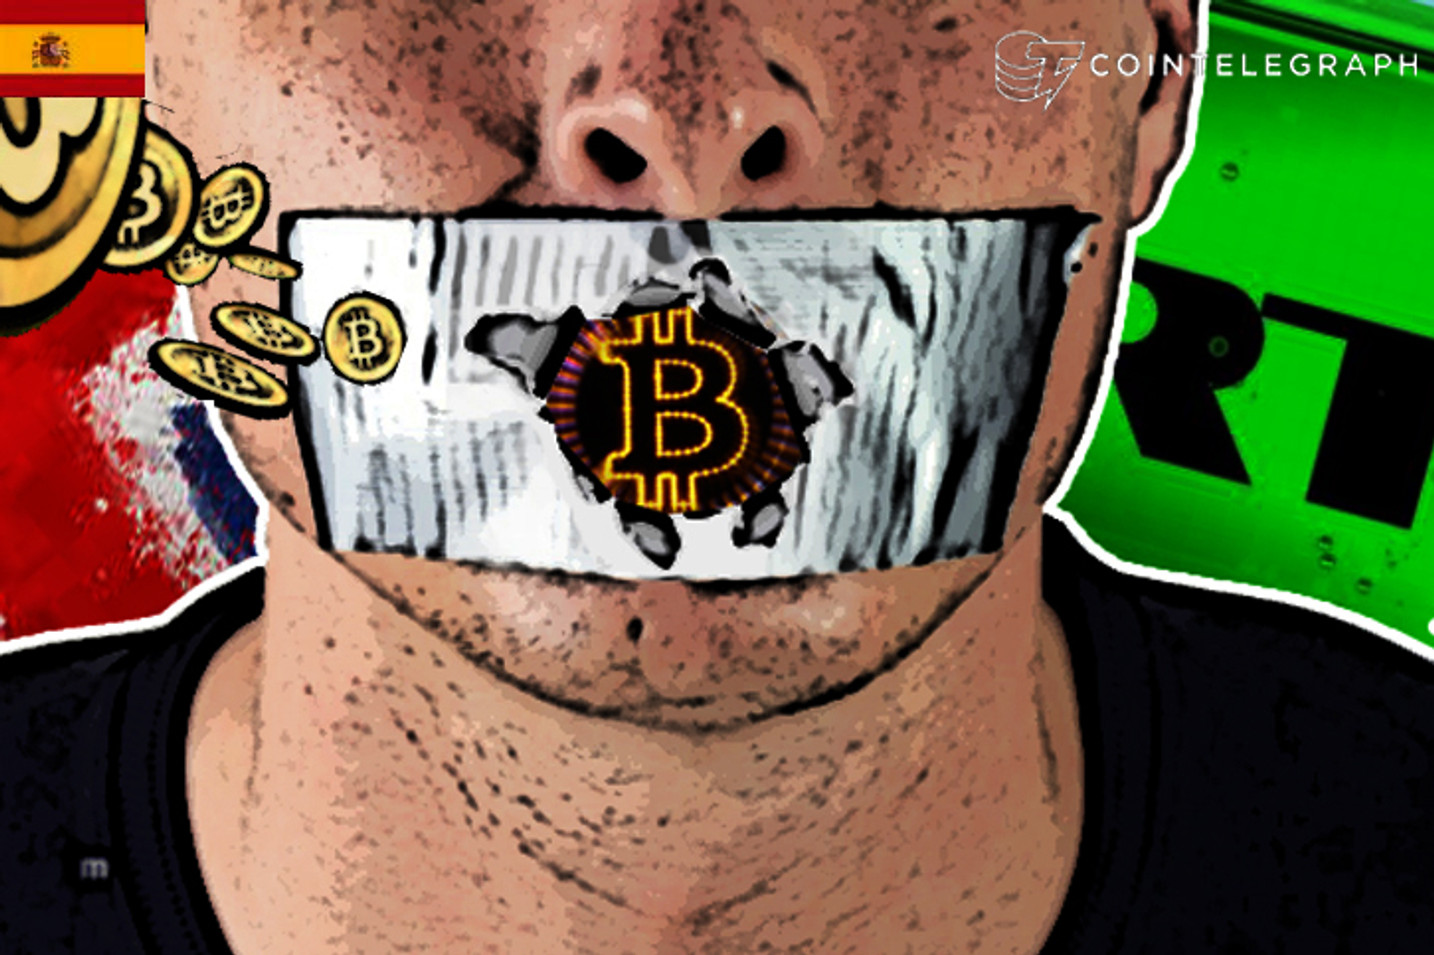 Bitcoin contra la censura financiera